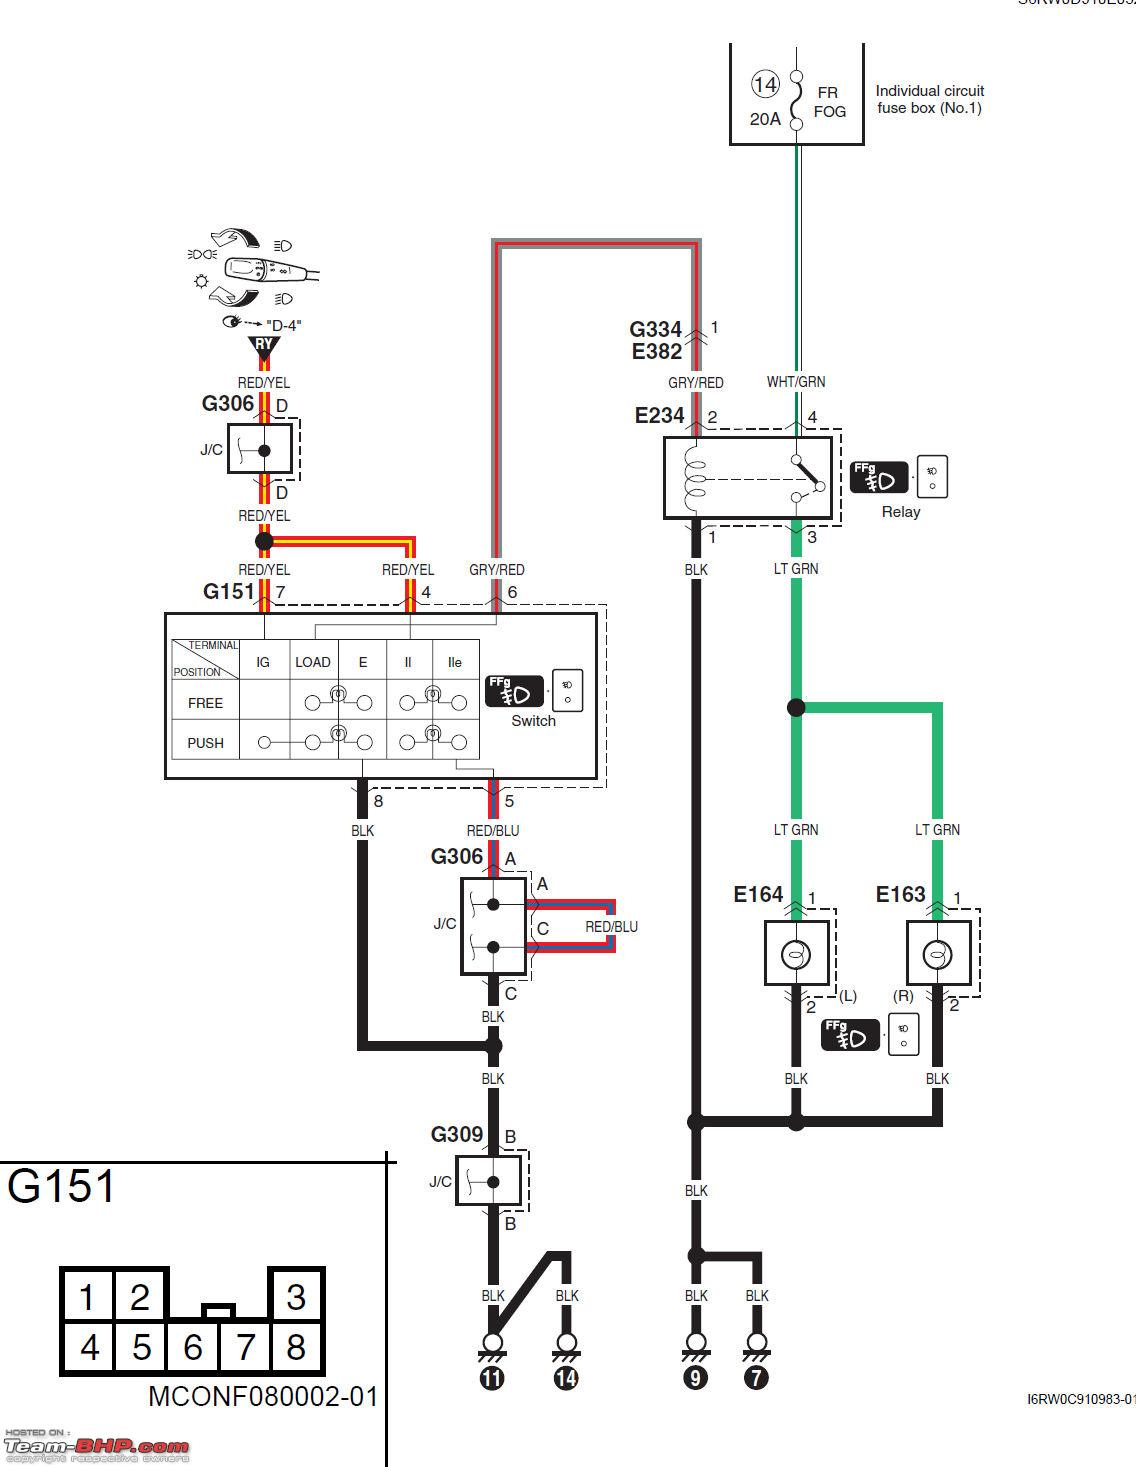 Electrical Wiring Diagram Of Maruti 800